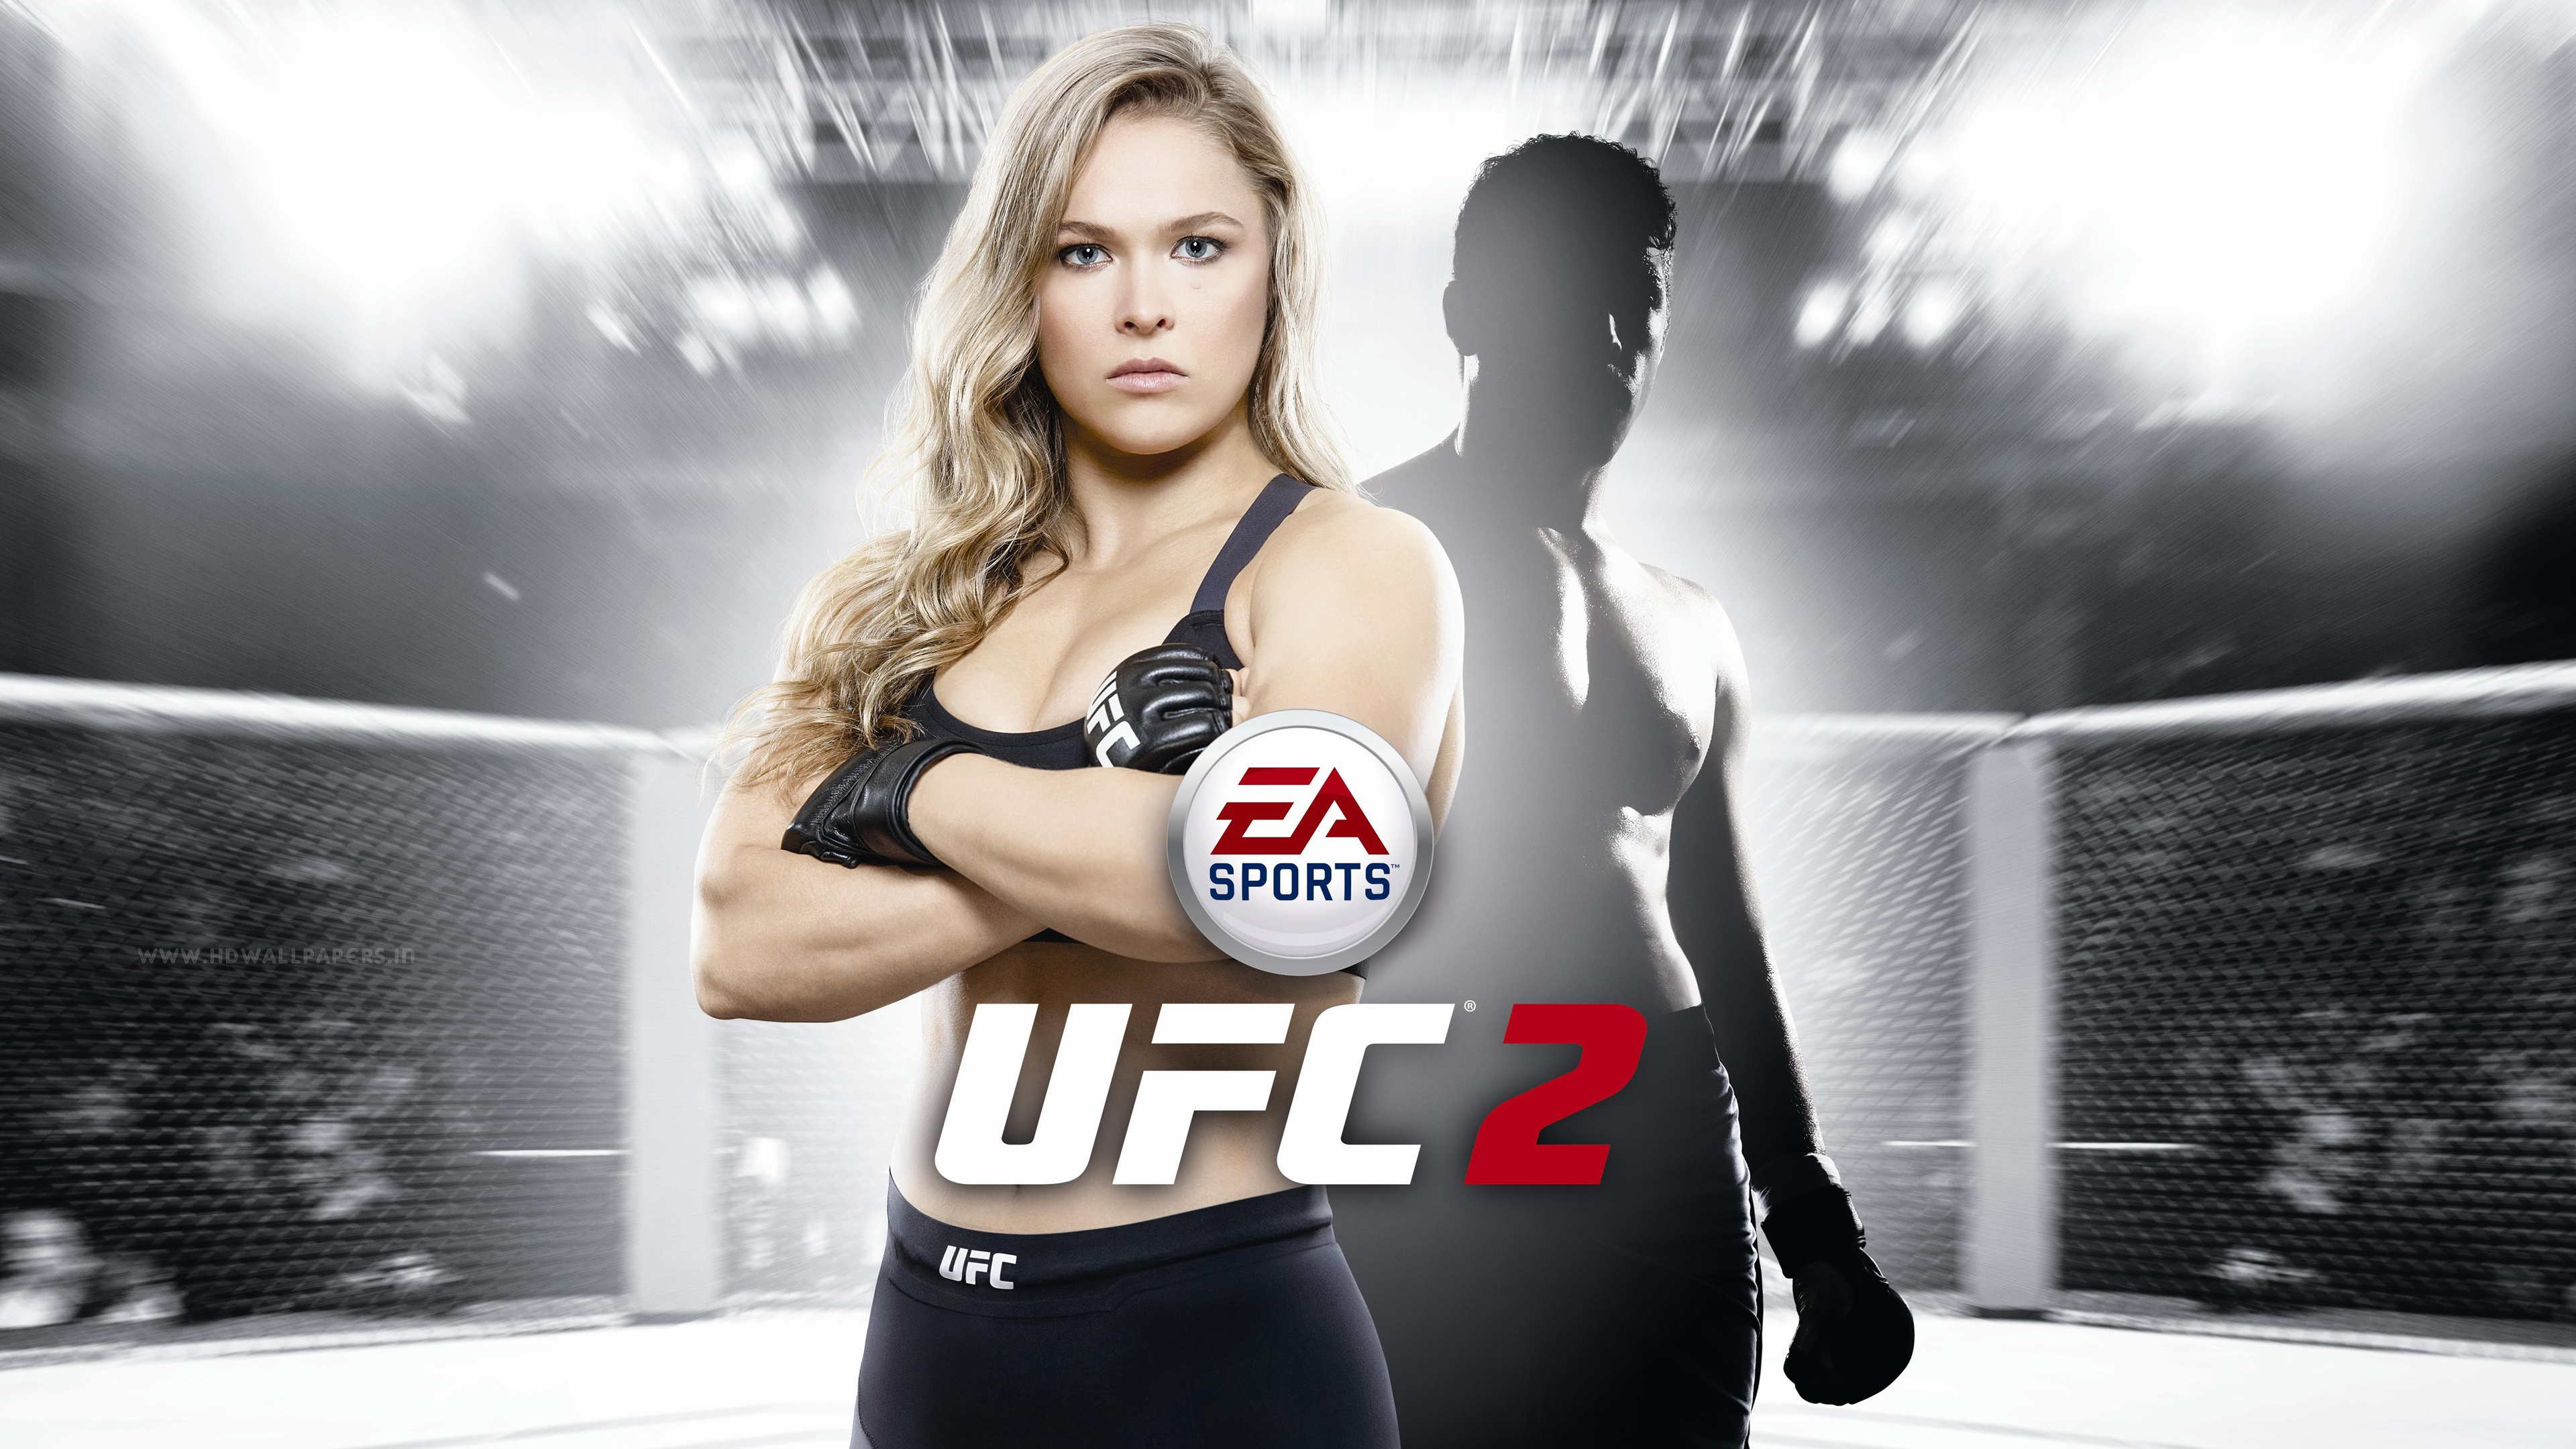 EA Sports UFC 2 Wallpapers in jpg format for download 3840x2160